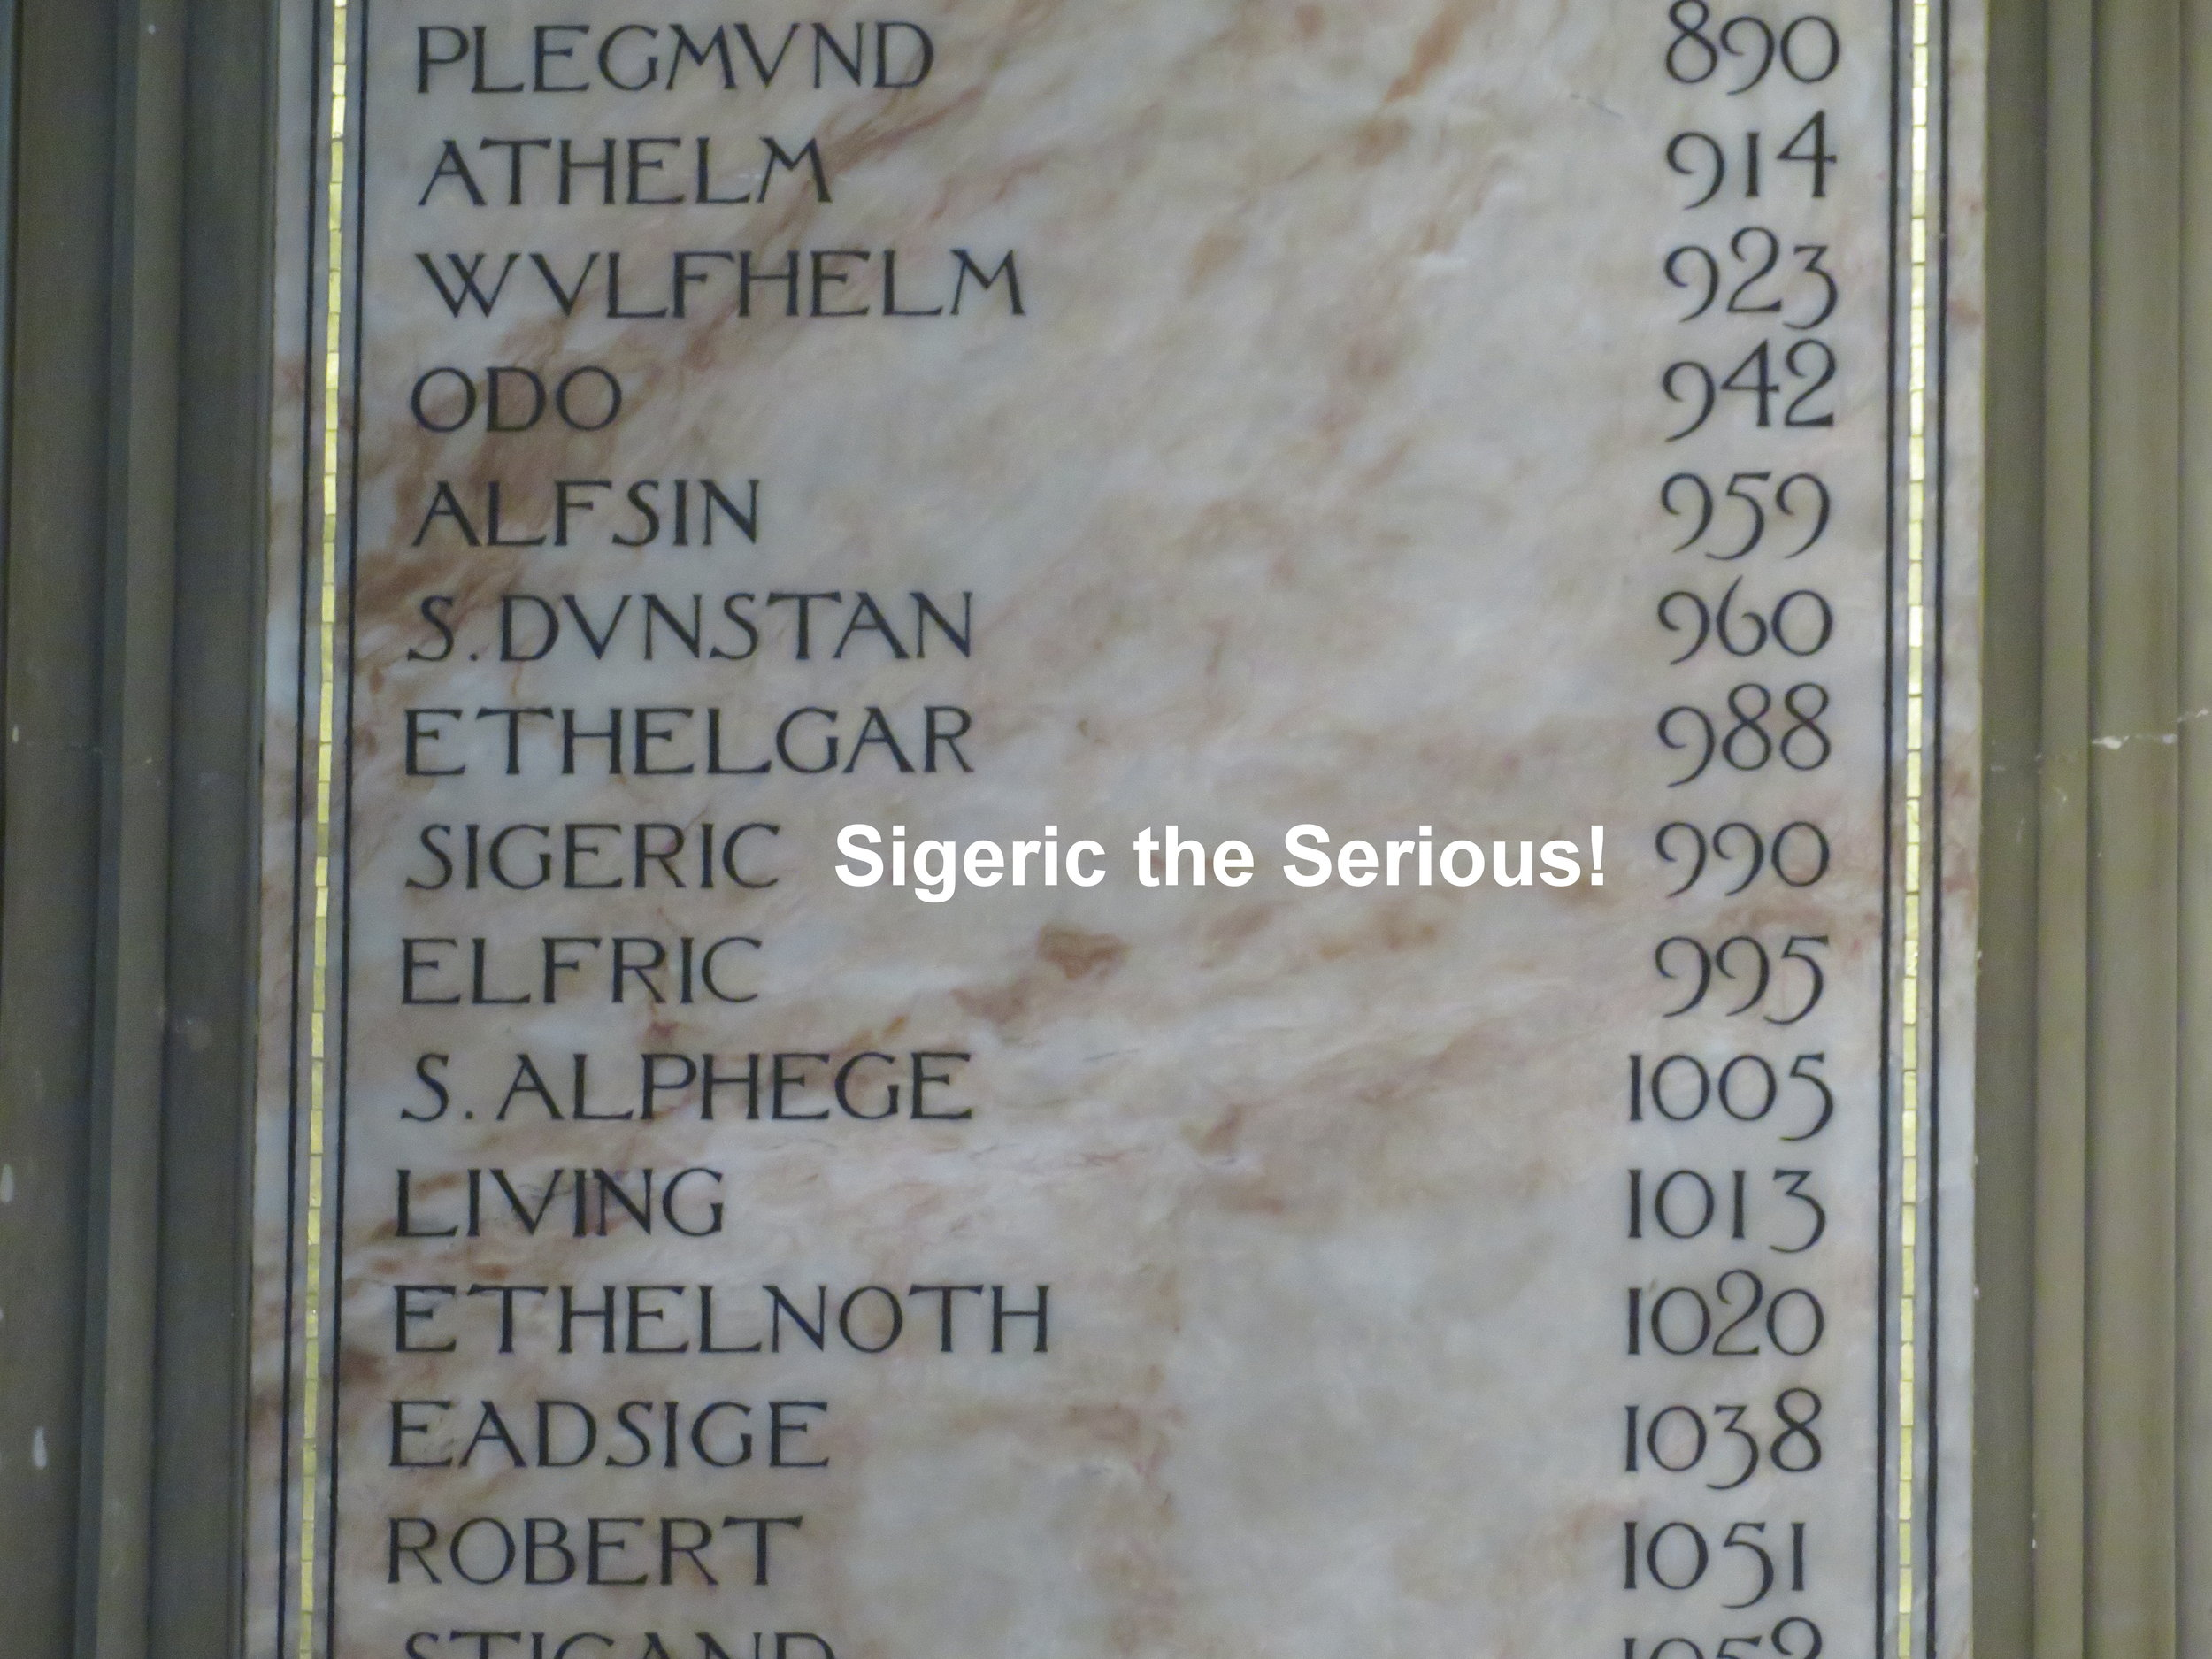 That's our man! It was Archbishop Sigeric who documented his route from Rome to Canterbury back in 990AD, the path we now call the Via Francigena. We found his name on the list of Archbishops of Canterbury.